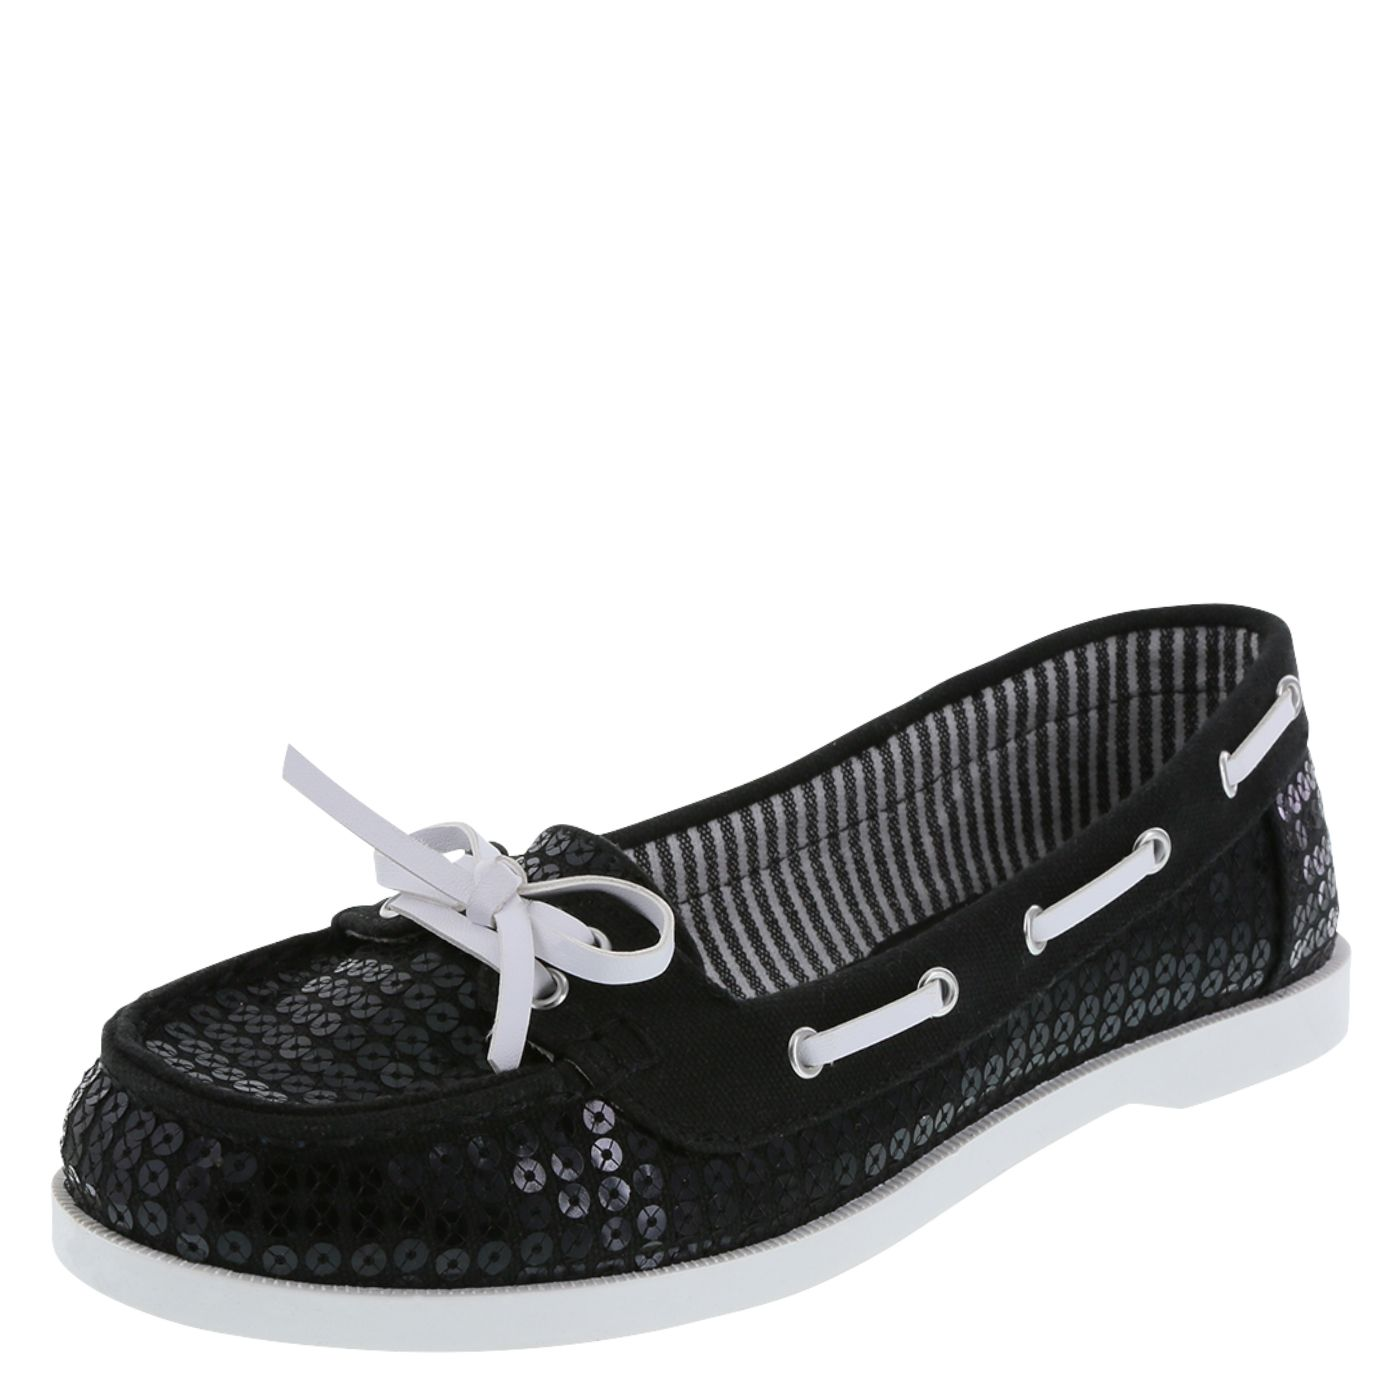 Boat shoes, Shoes, Payless shoesource